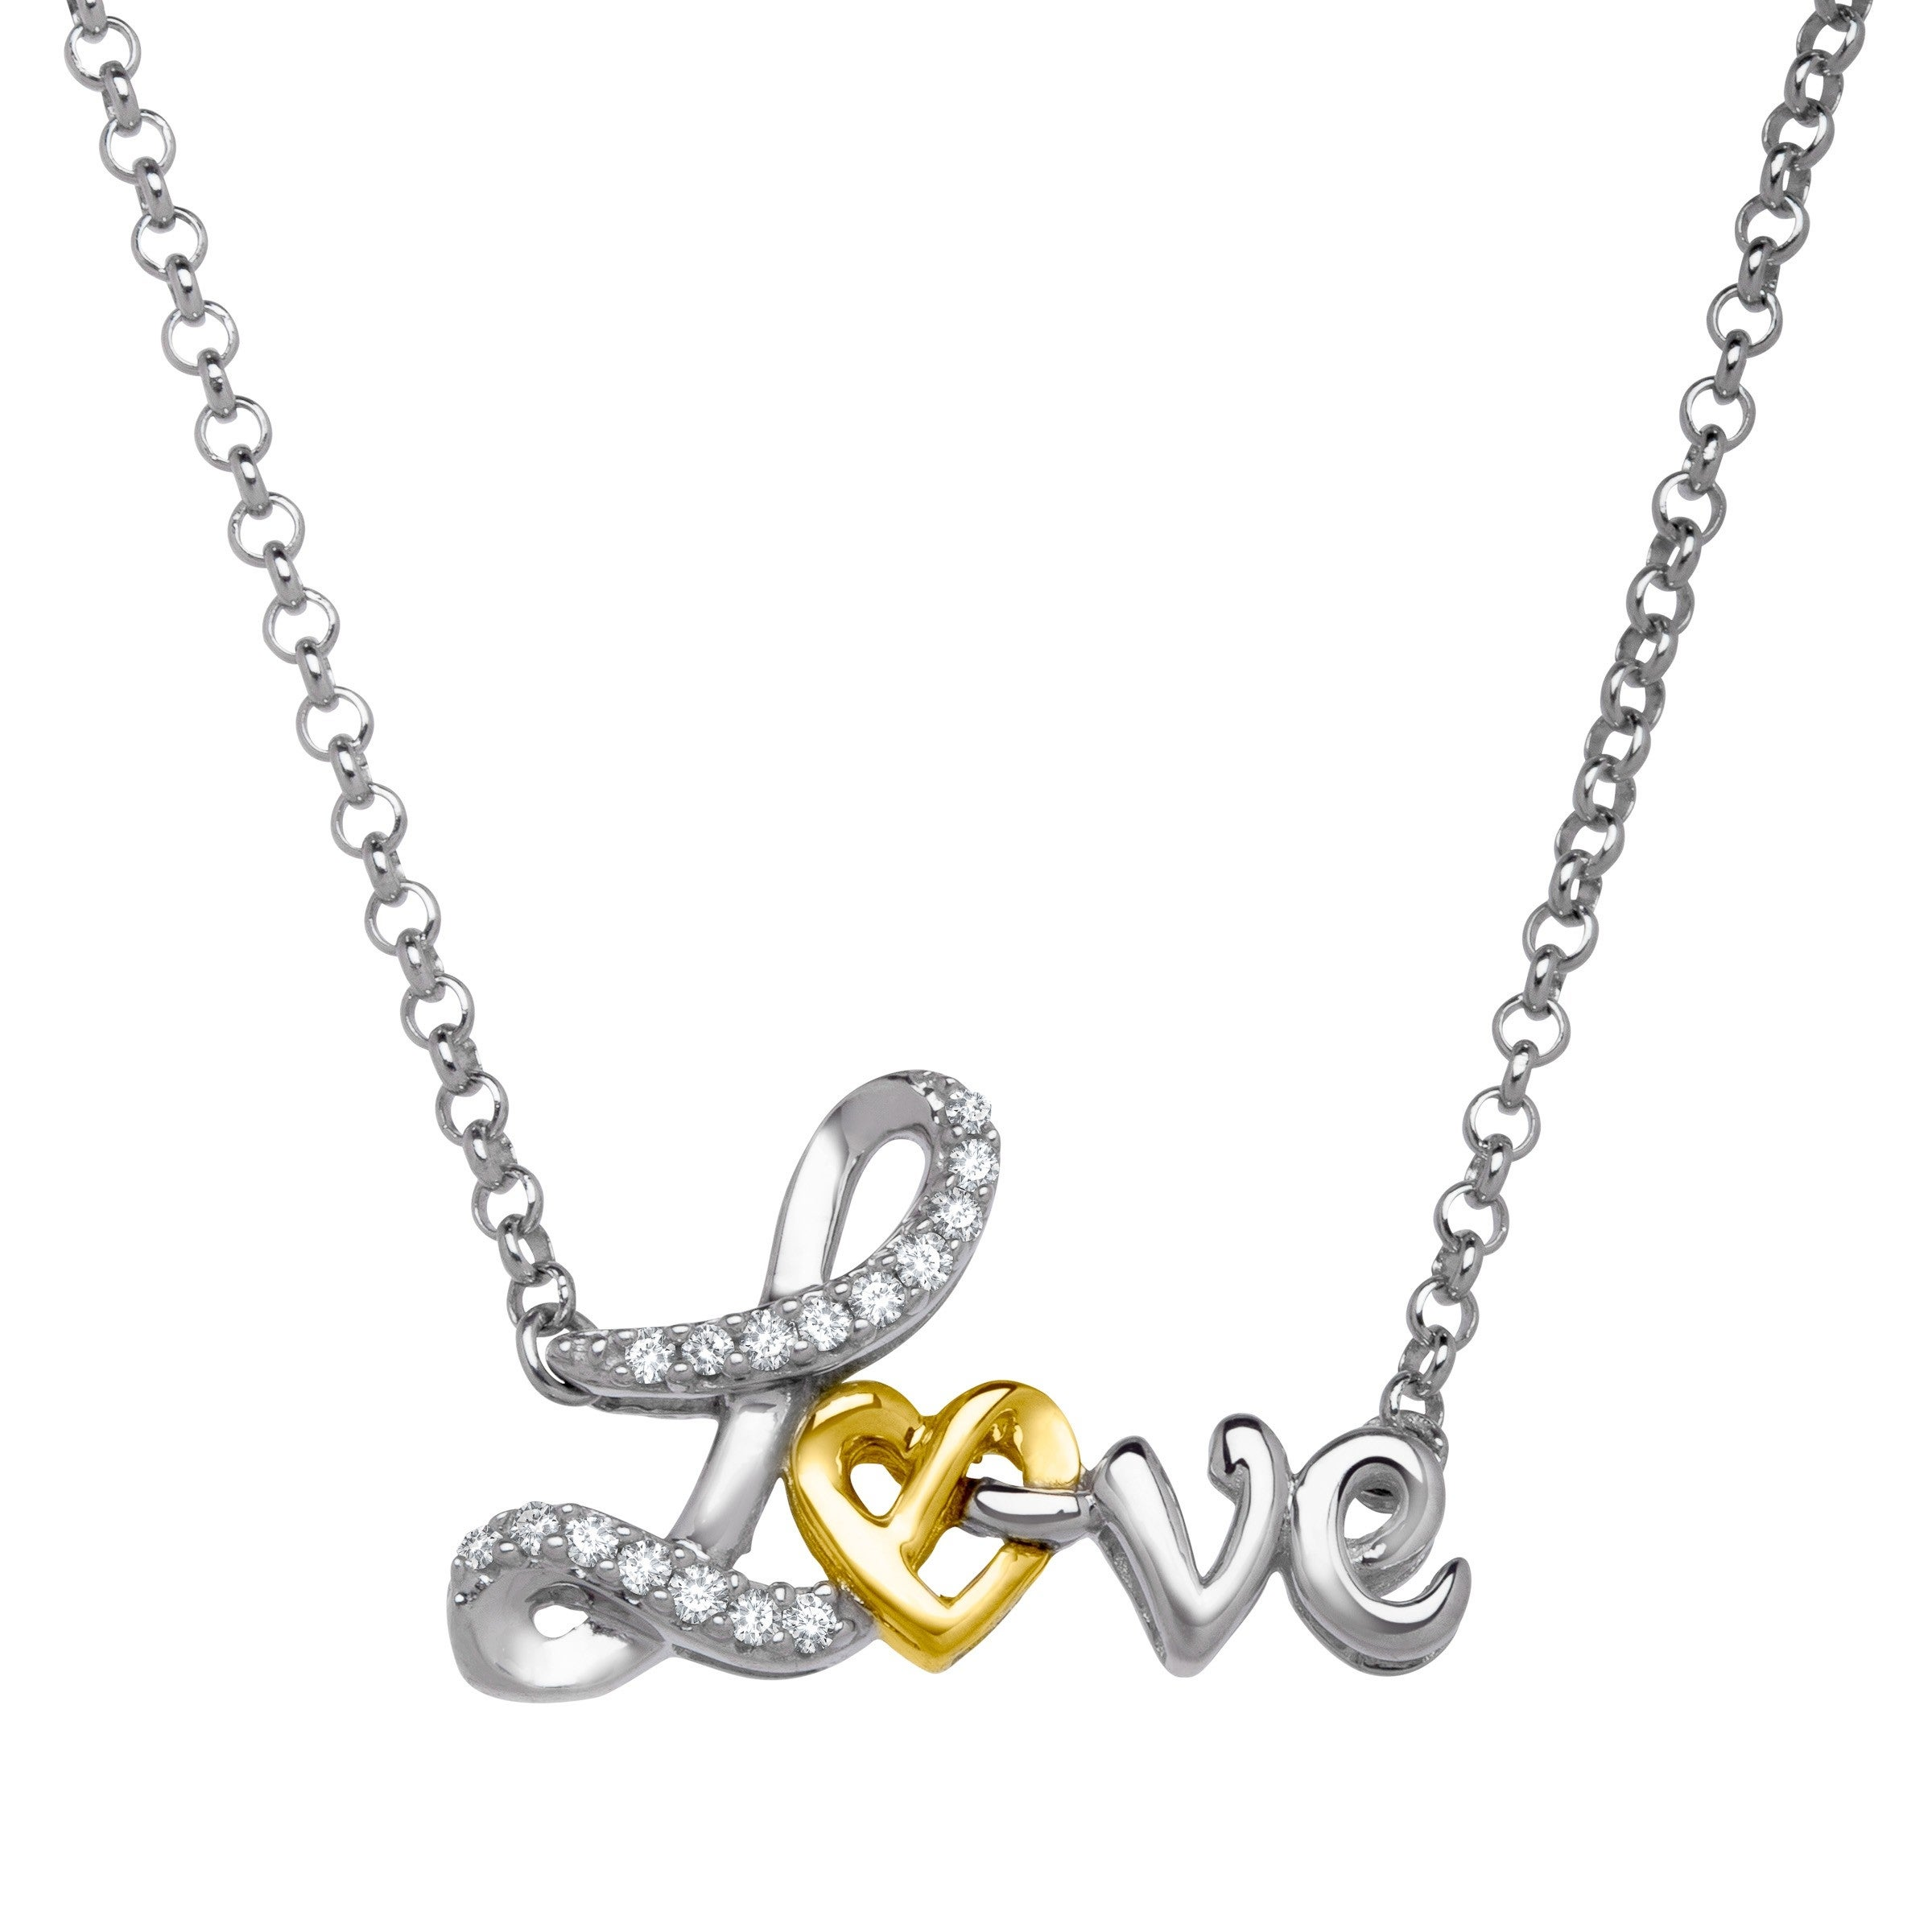 Script /'Love/' Necklace with Diamonds in Sterling Silver /& 14K Gold